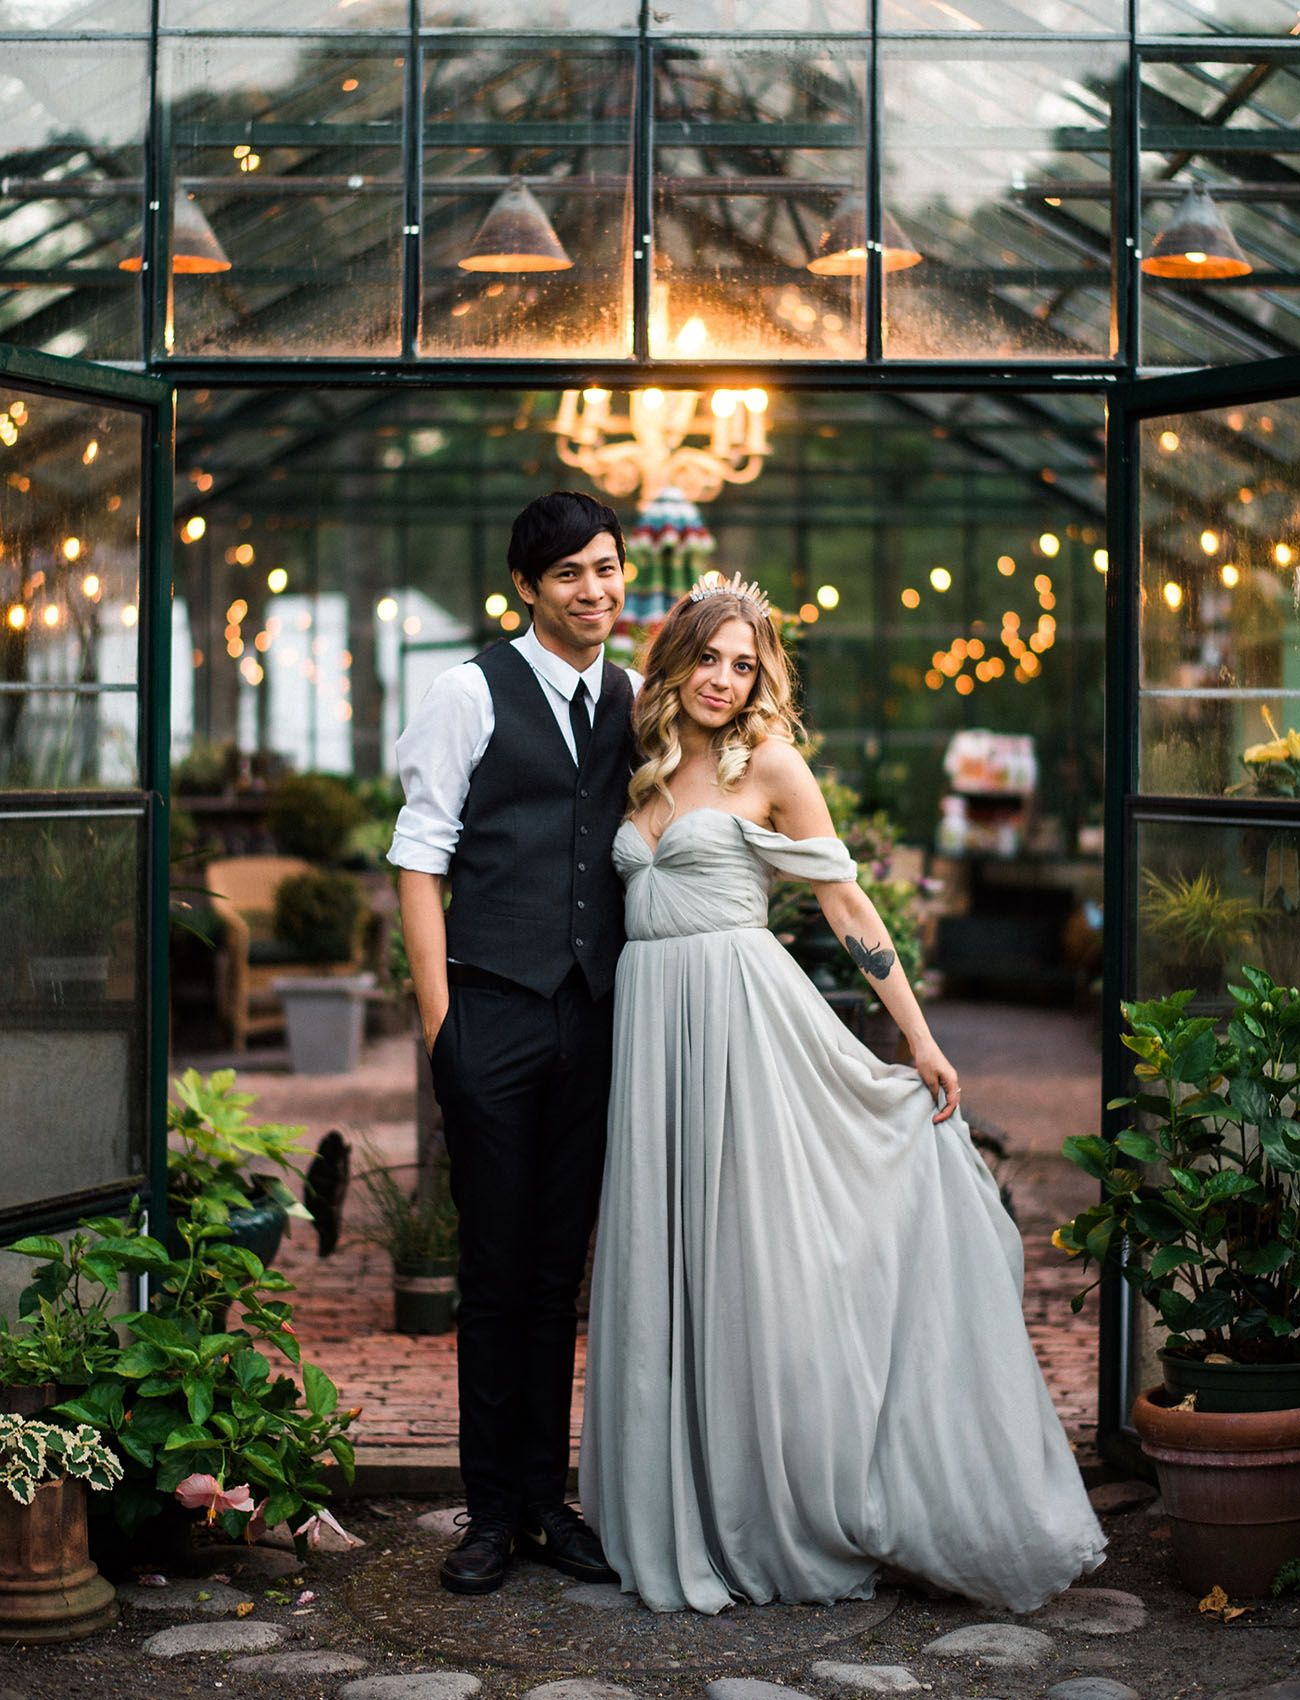 Raynham Hall Historical House Museum Long Island, Rustic Meets Eclectic at this Greenhouse Wedding in New York ...